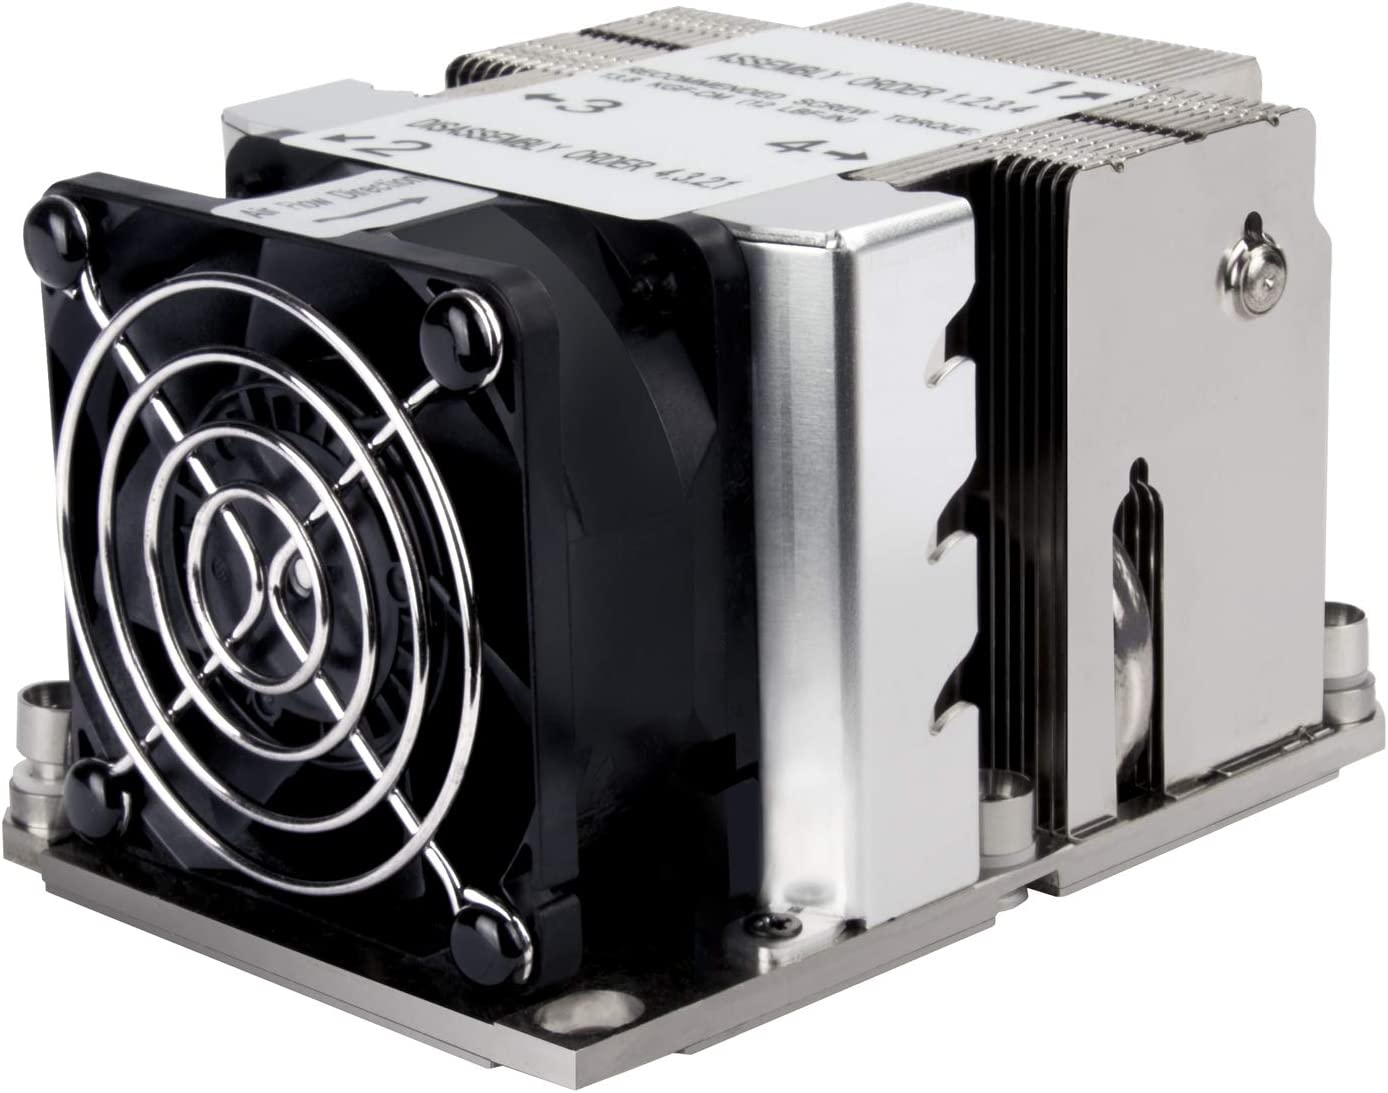 XE02-3647N SilverStone Technology - 2U Small Form Factor Server/Workstation CPU Cooler for Intel LGA 3647 Narrow sockets